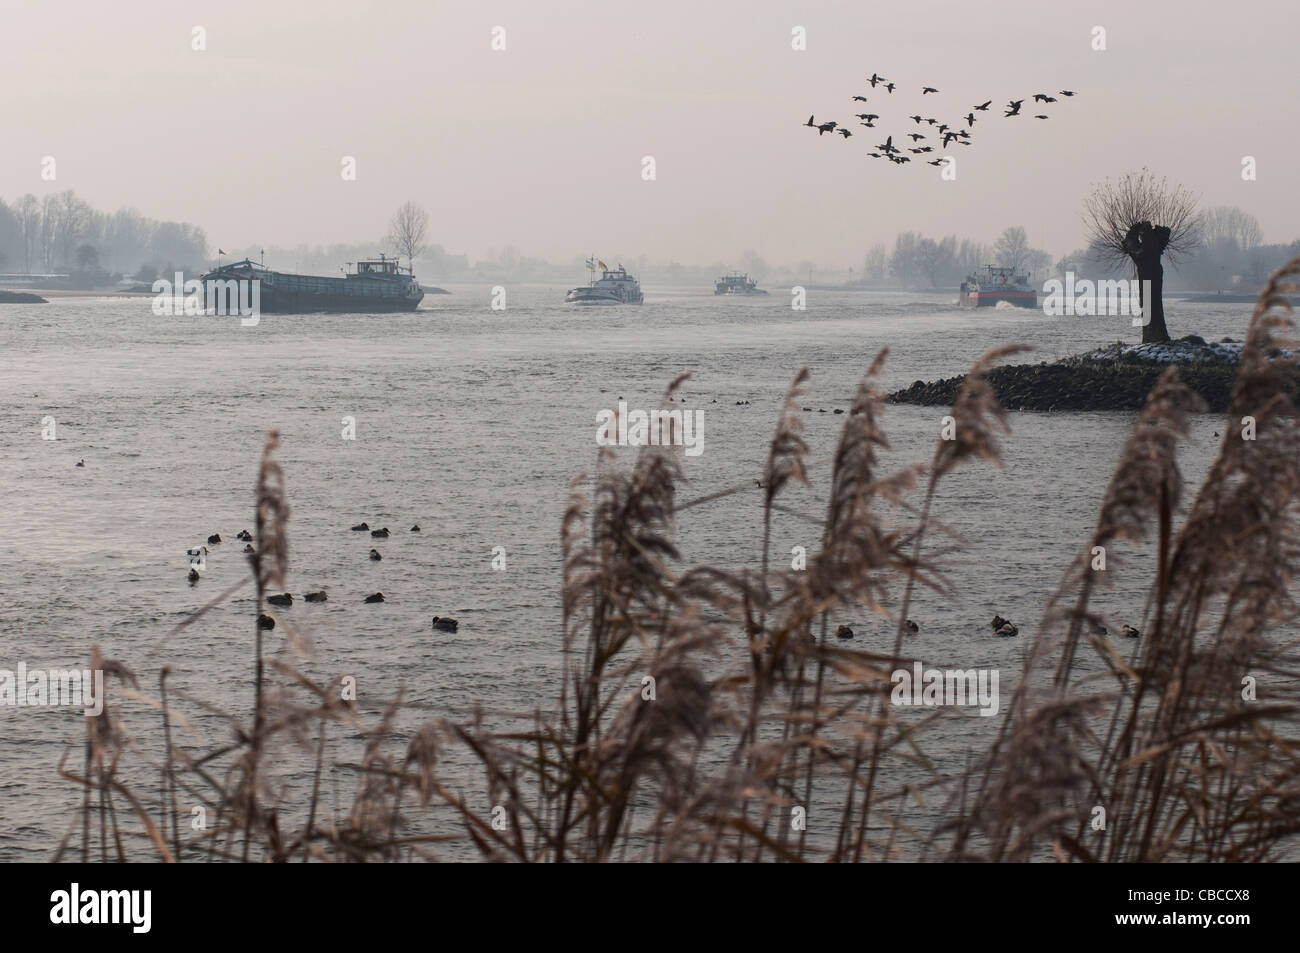 misty view at the river Lek / Rhine - Stock Image